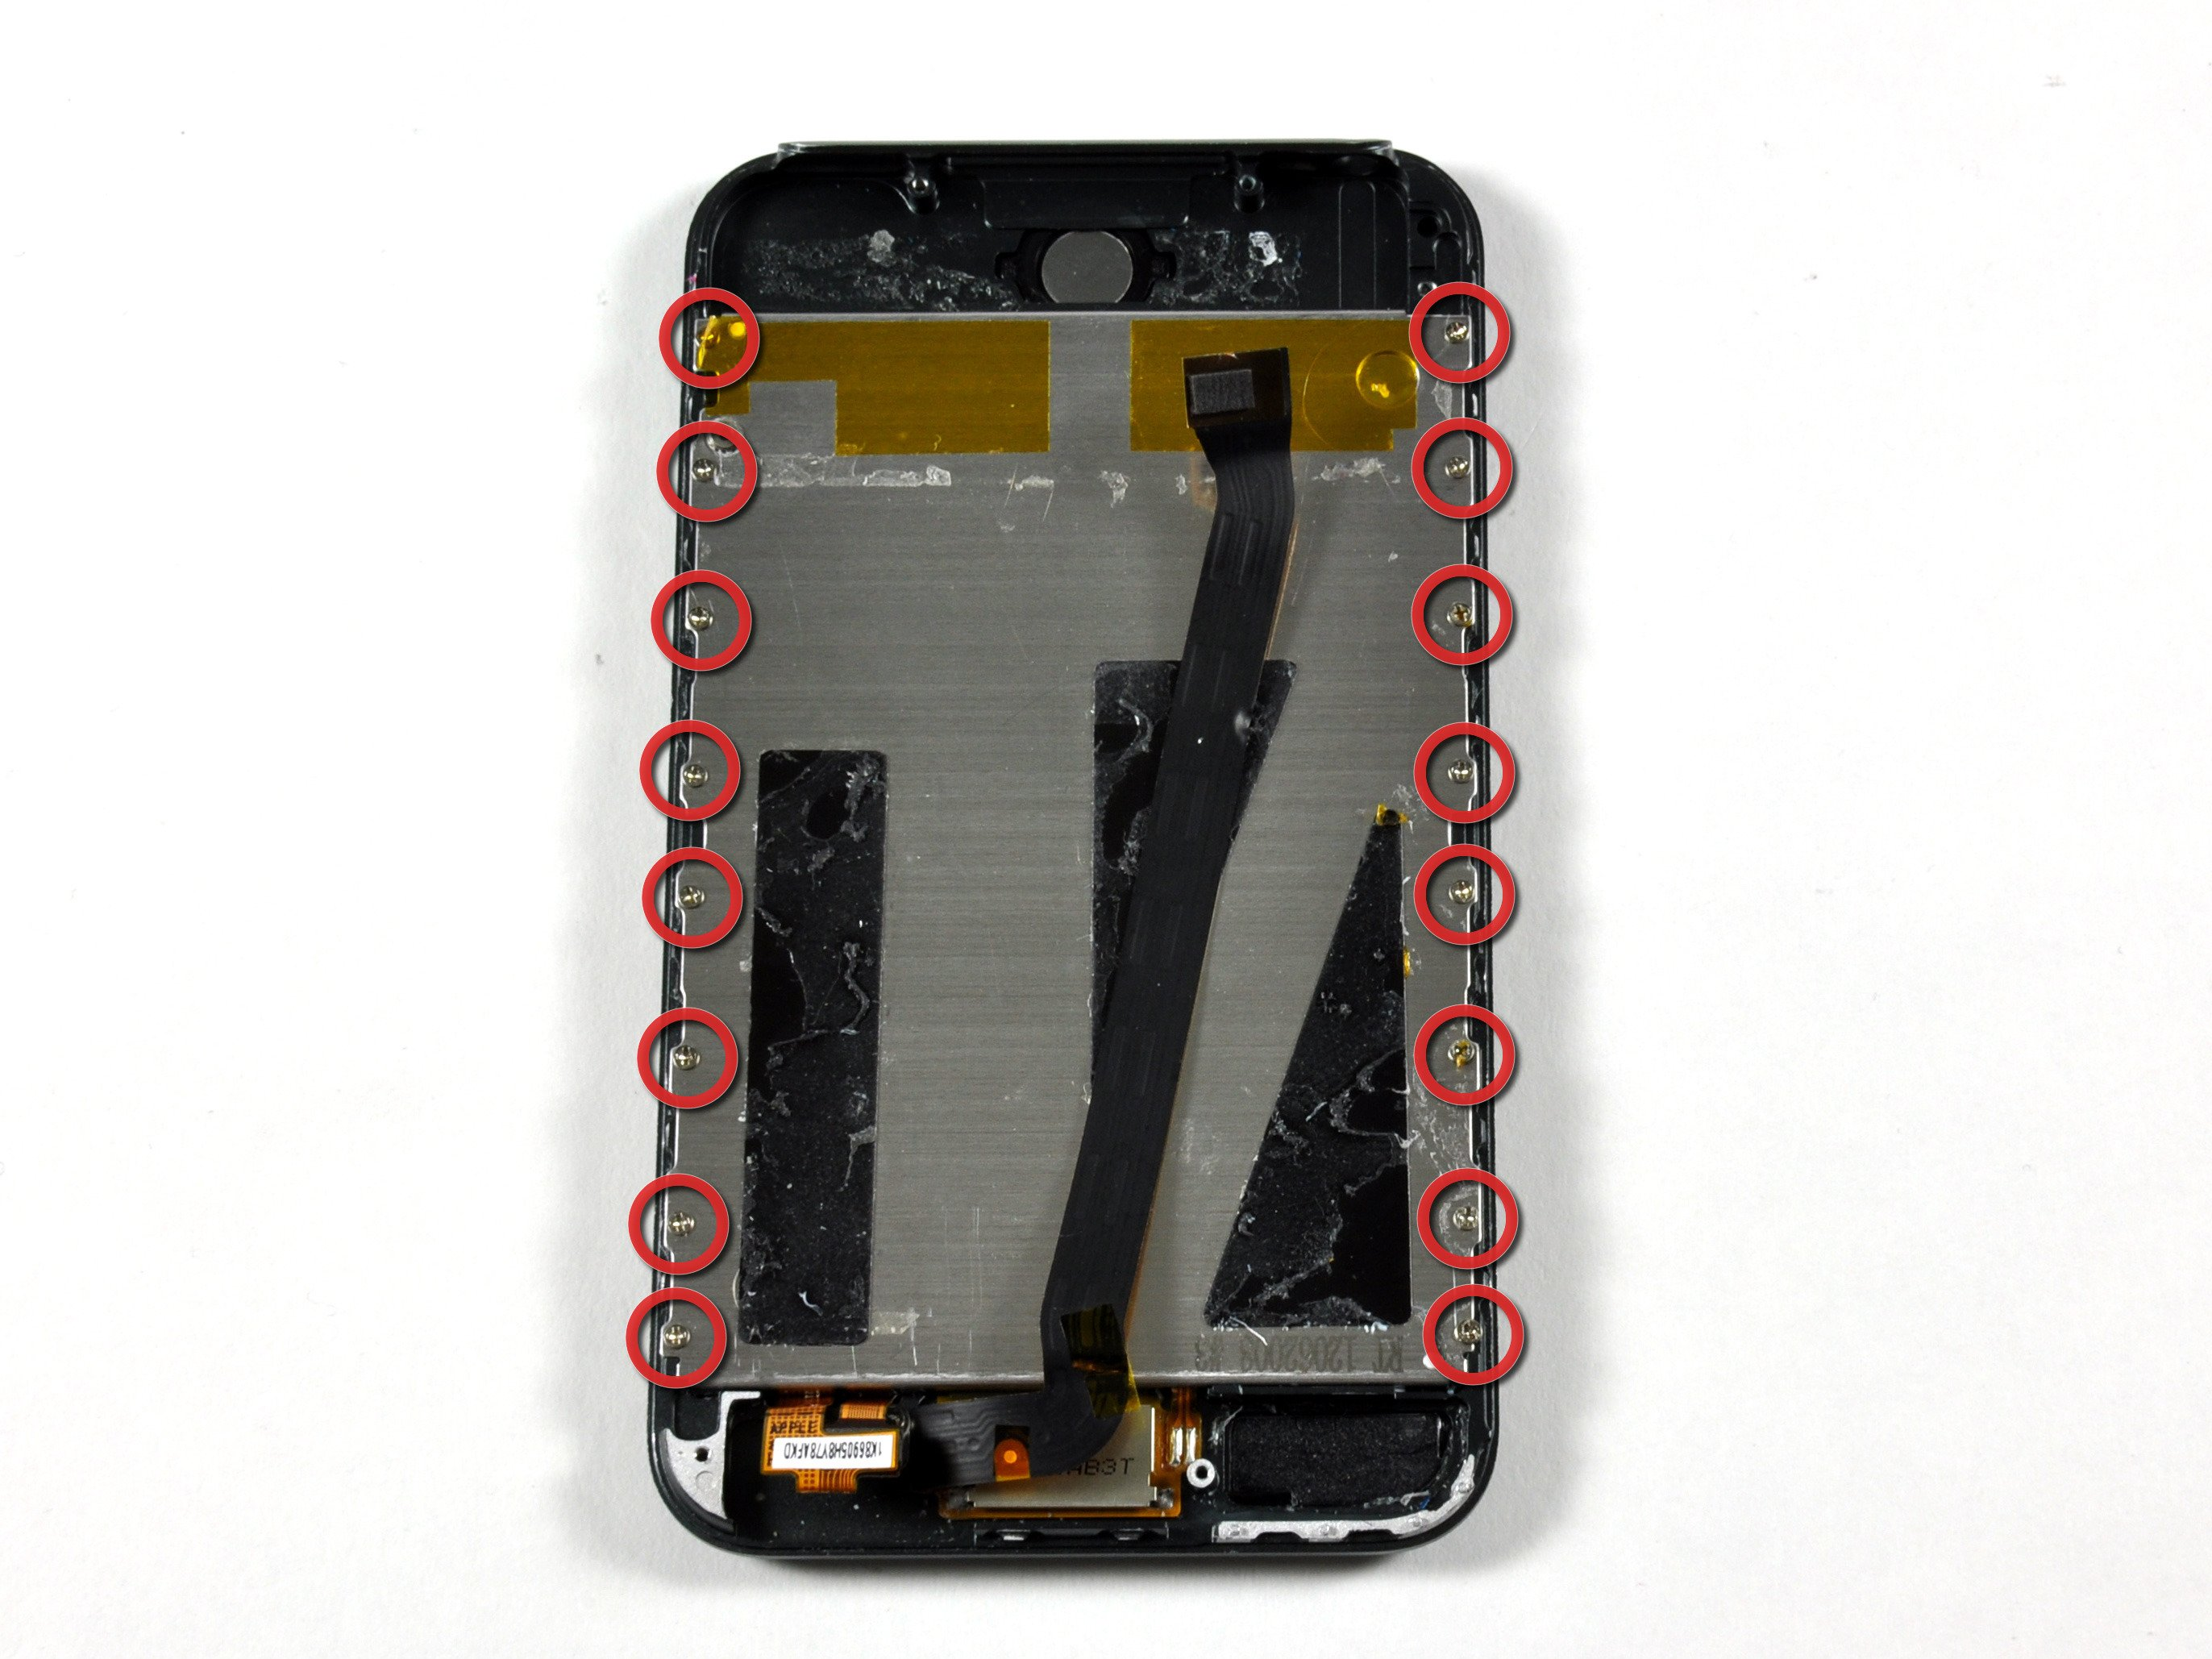 quality design a98b4 434df iPod Touch 1st Generation Display Replacement - iFixit Repair Guide